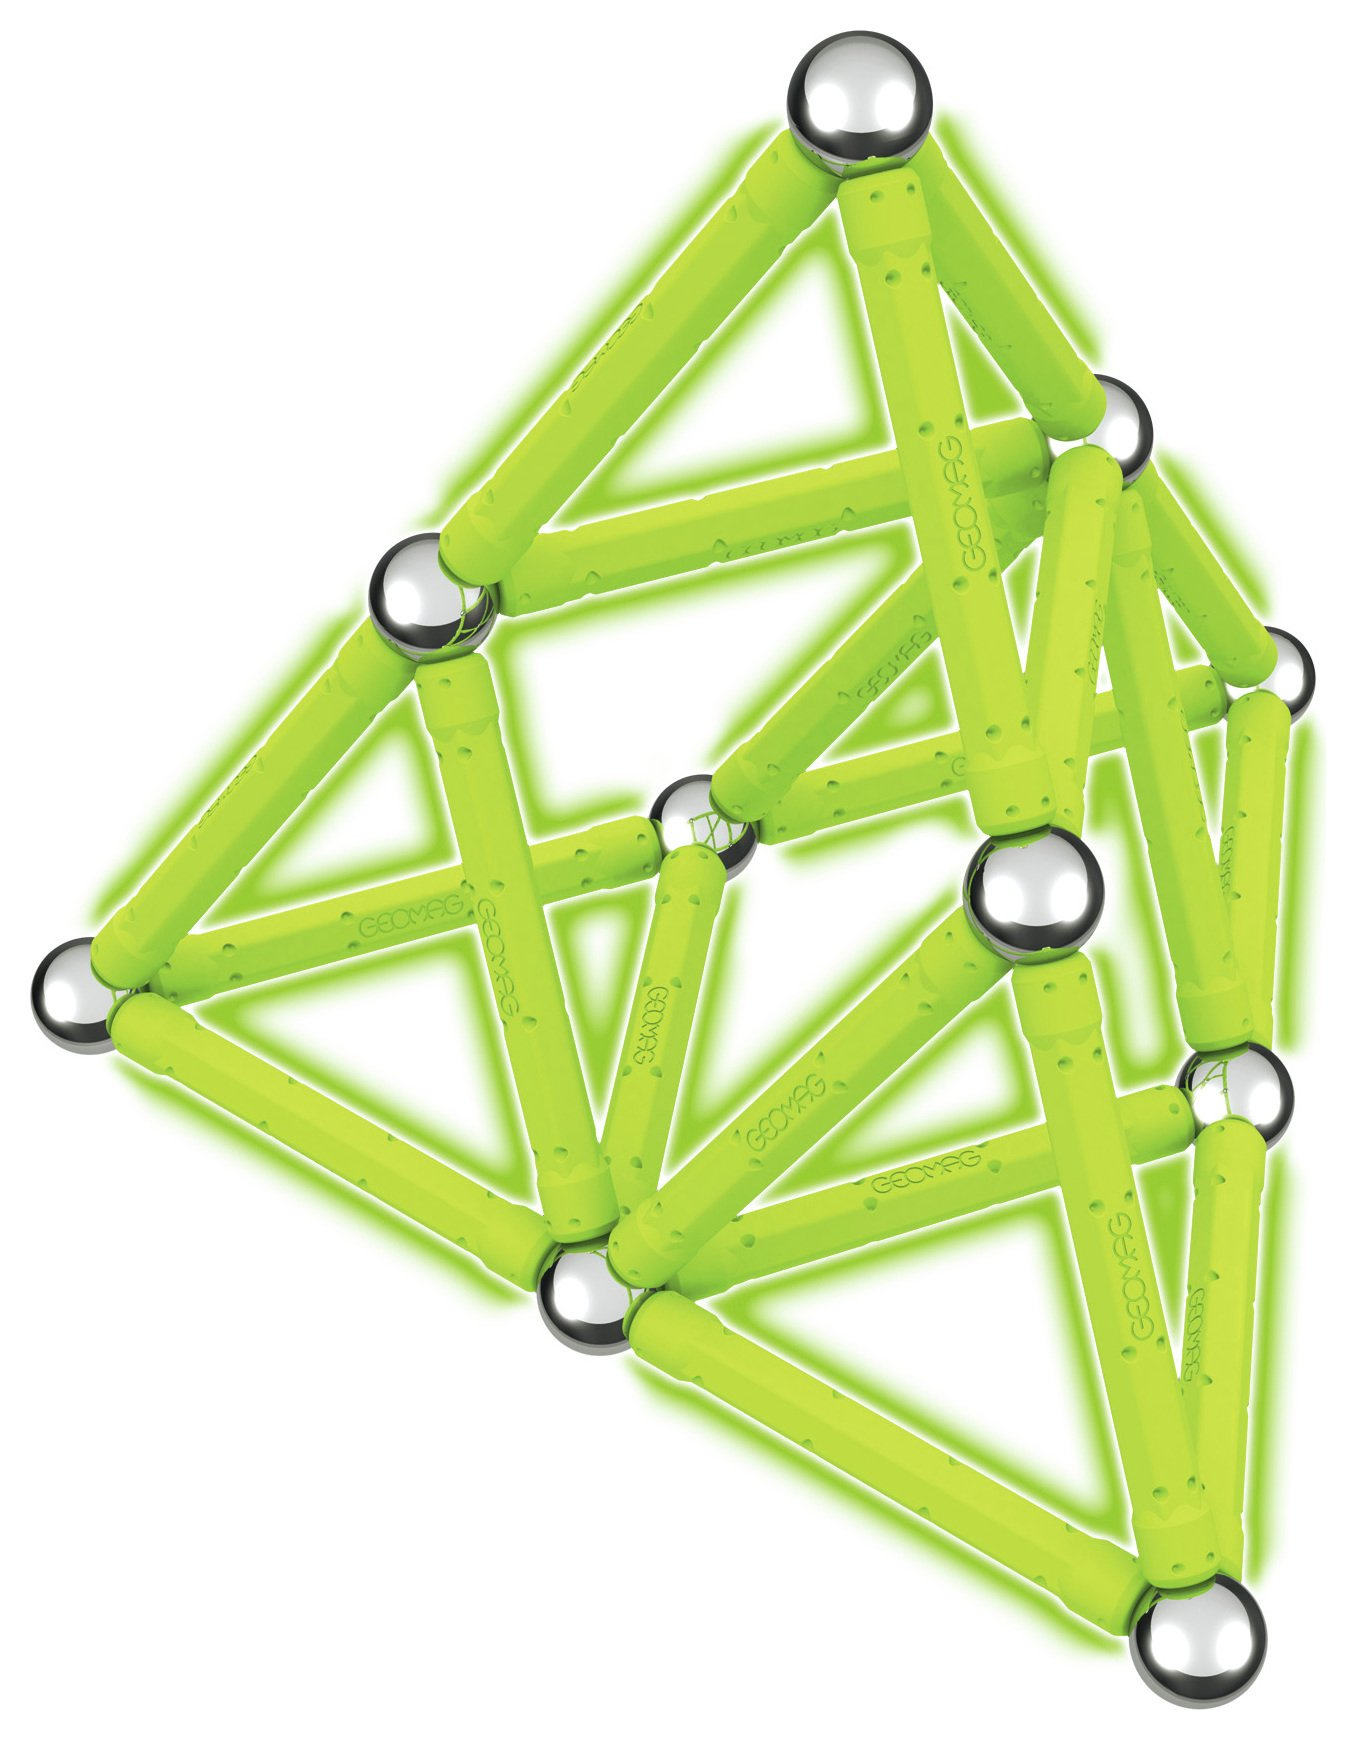 Image of Geomag - Glow 40 Construction Pieces